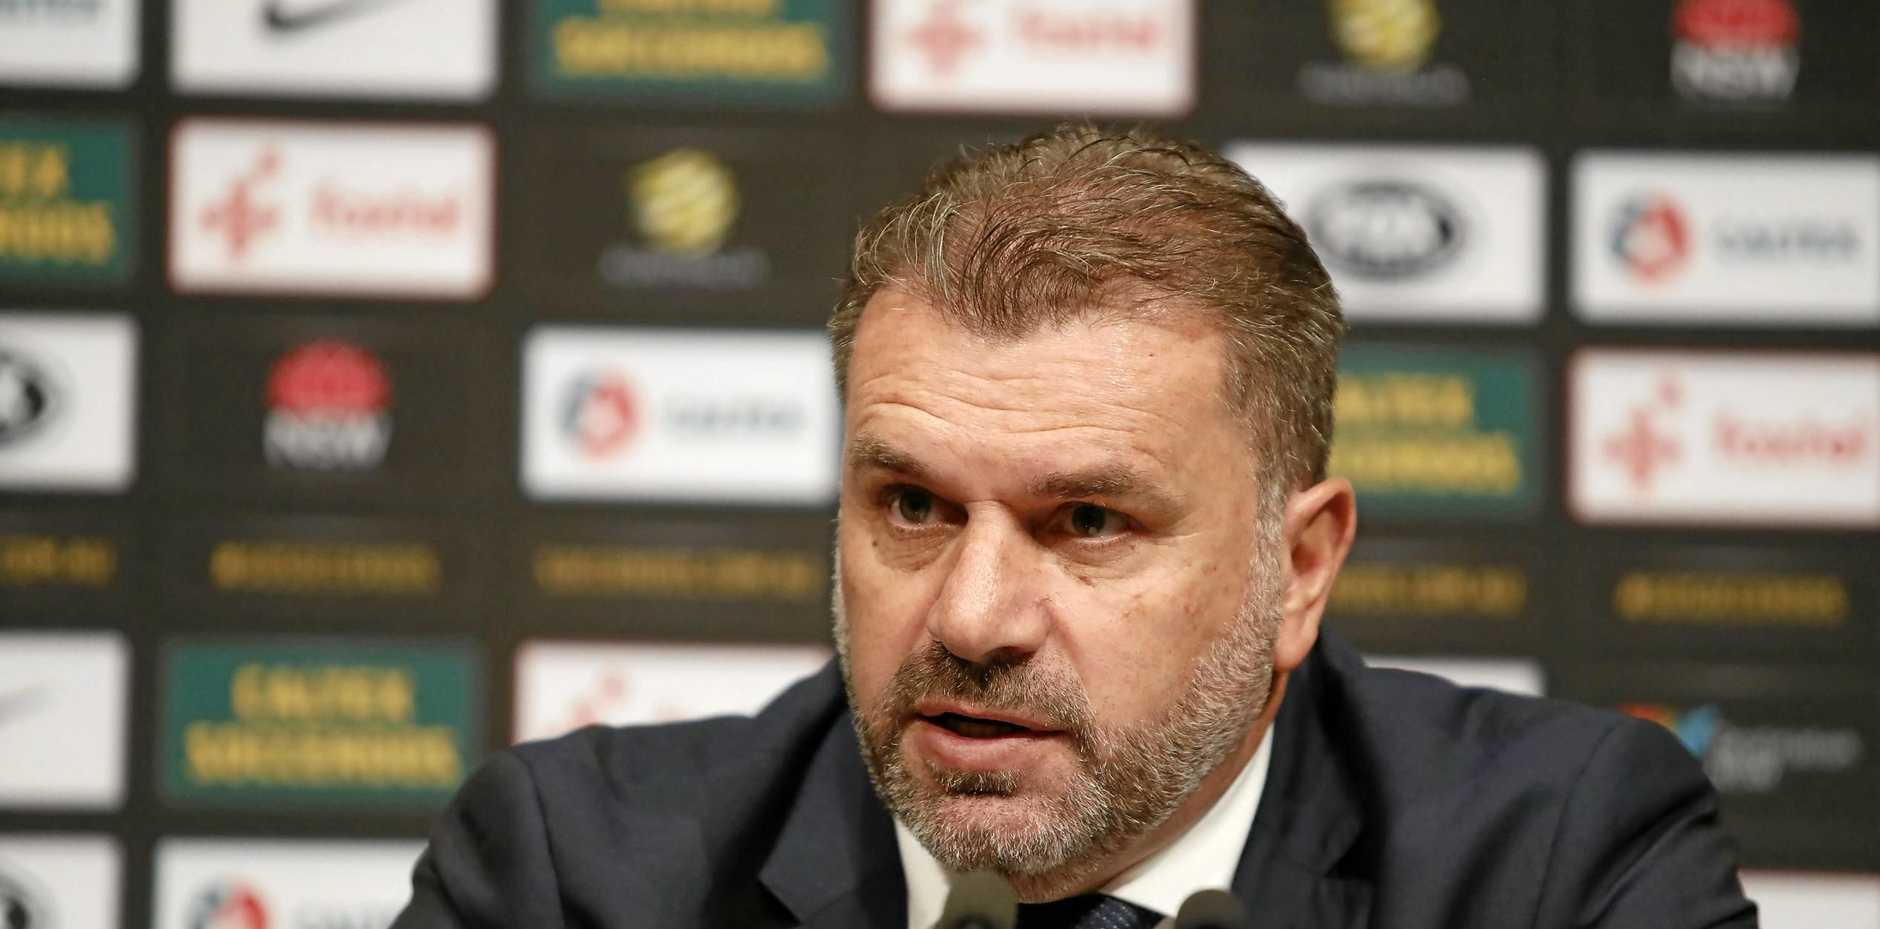 Socceroos coach Ange Postecoglou says his focus is on his team's next two games.